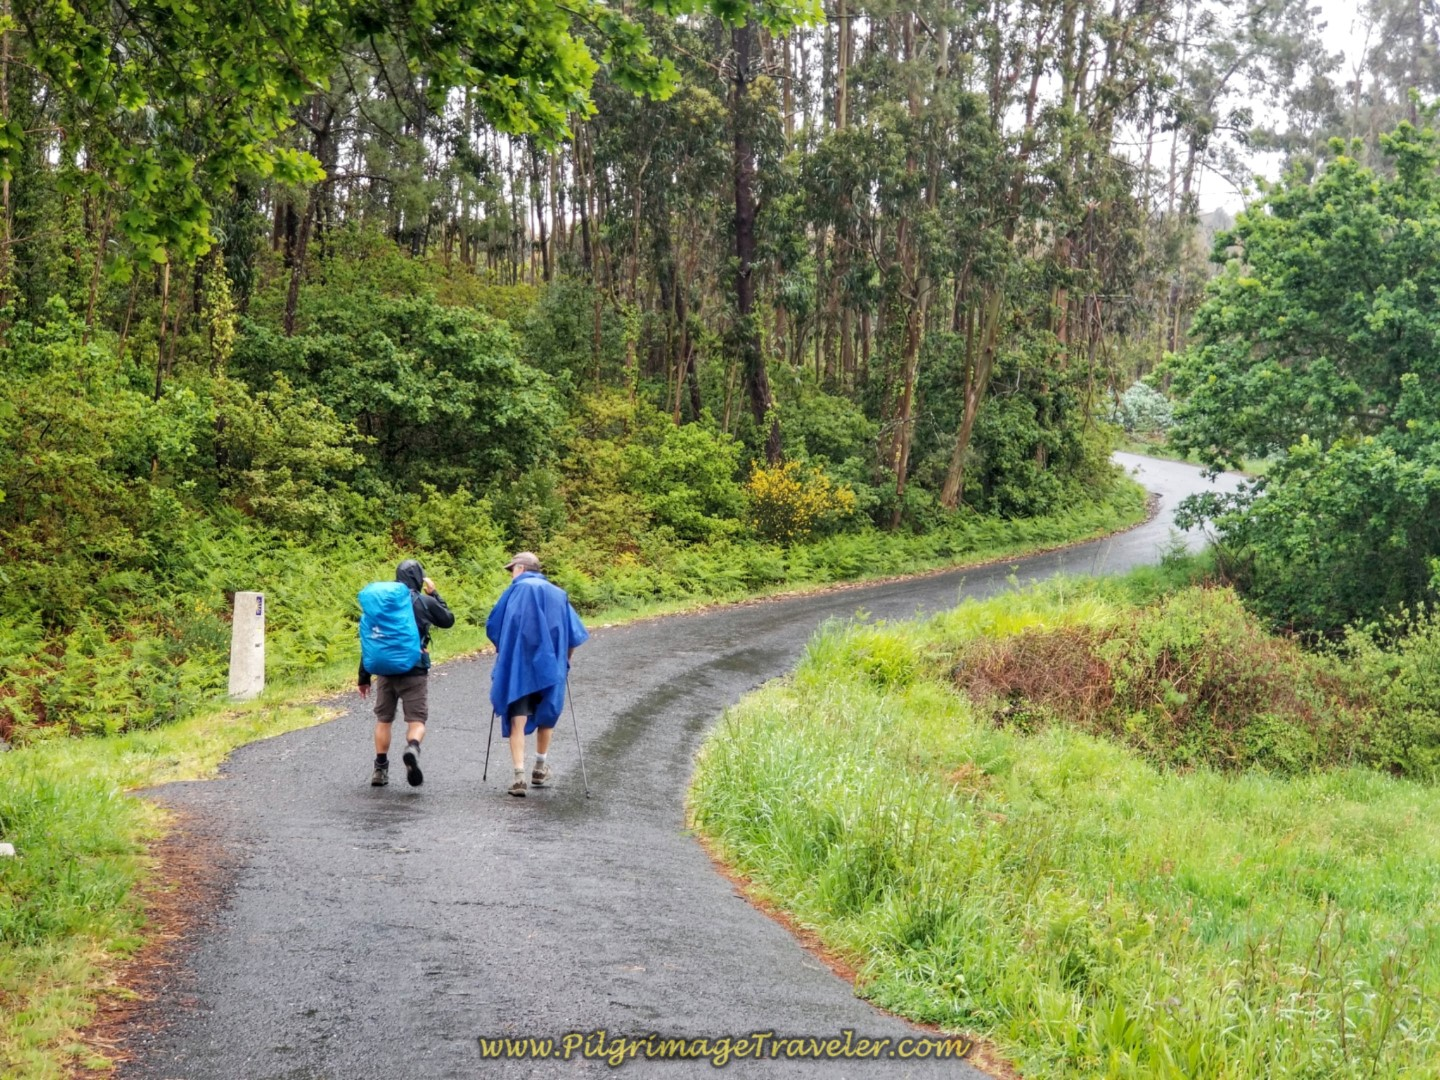 On the Long Paved Road to Morquintián on the Camino from Finisterre to Muxia